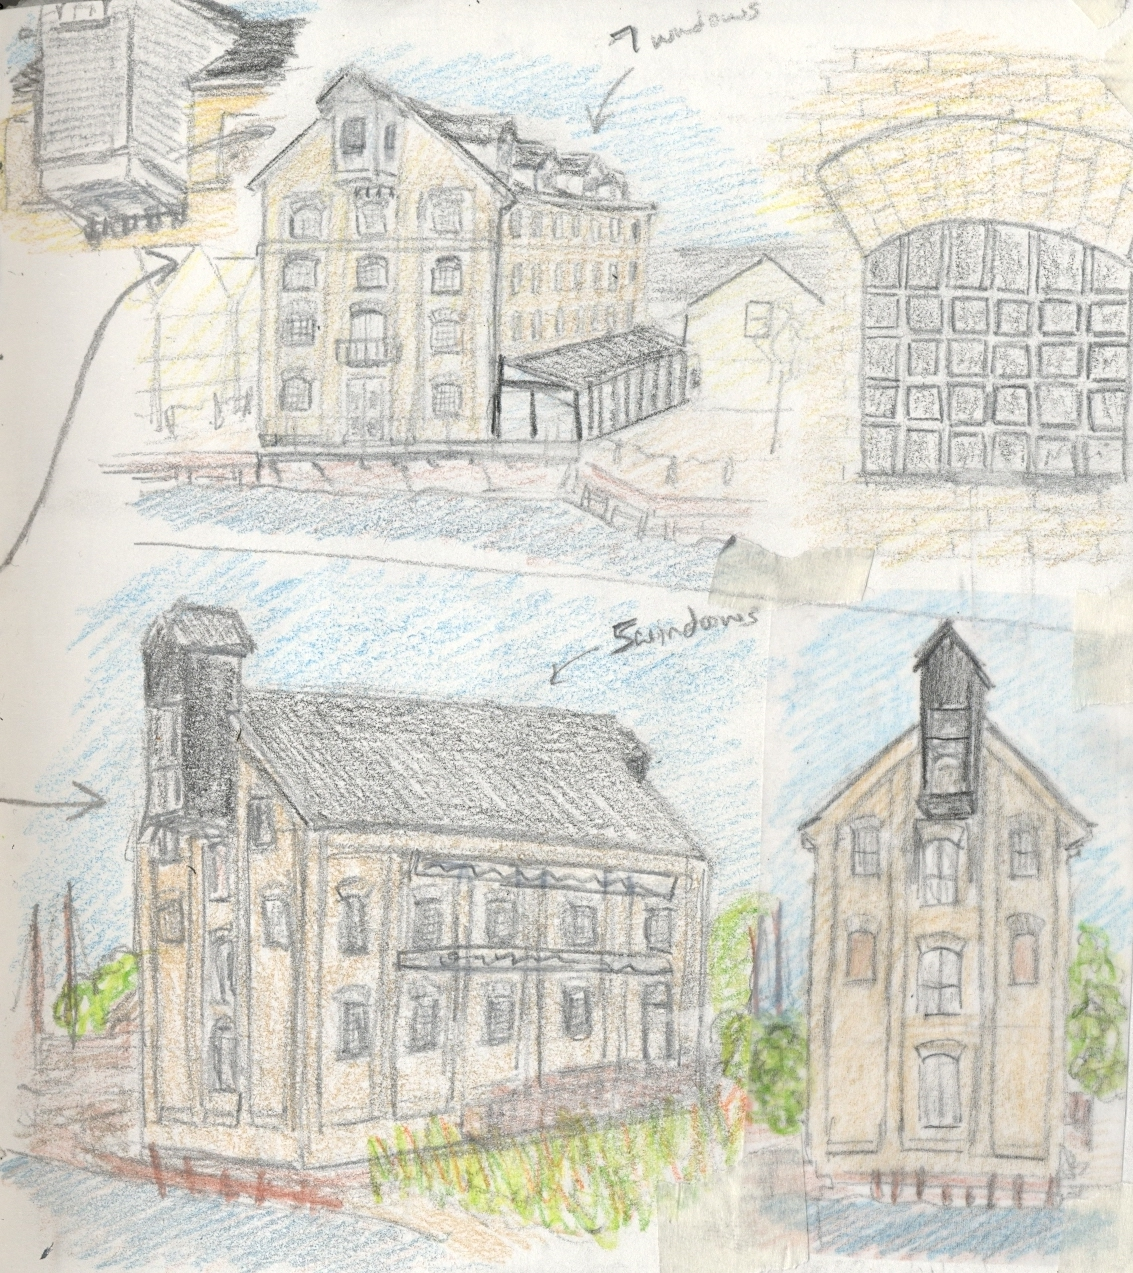 19th Century building sketches. Provender Mill (top), Oyster Bay House (bottom)